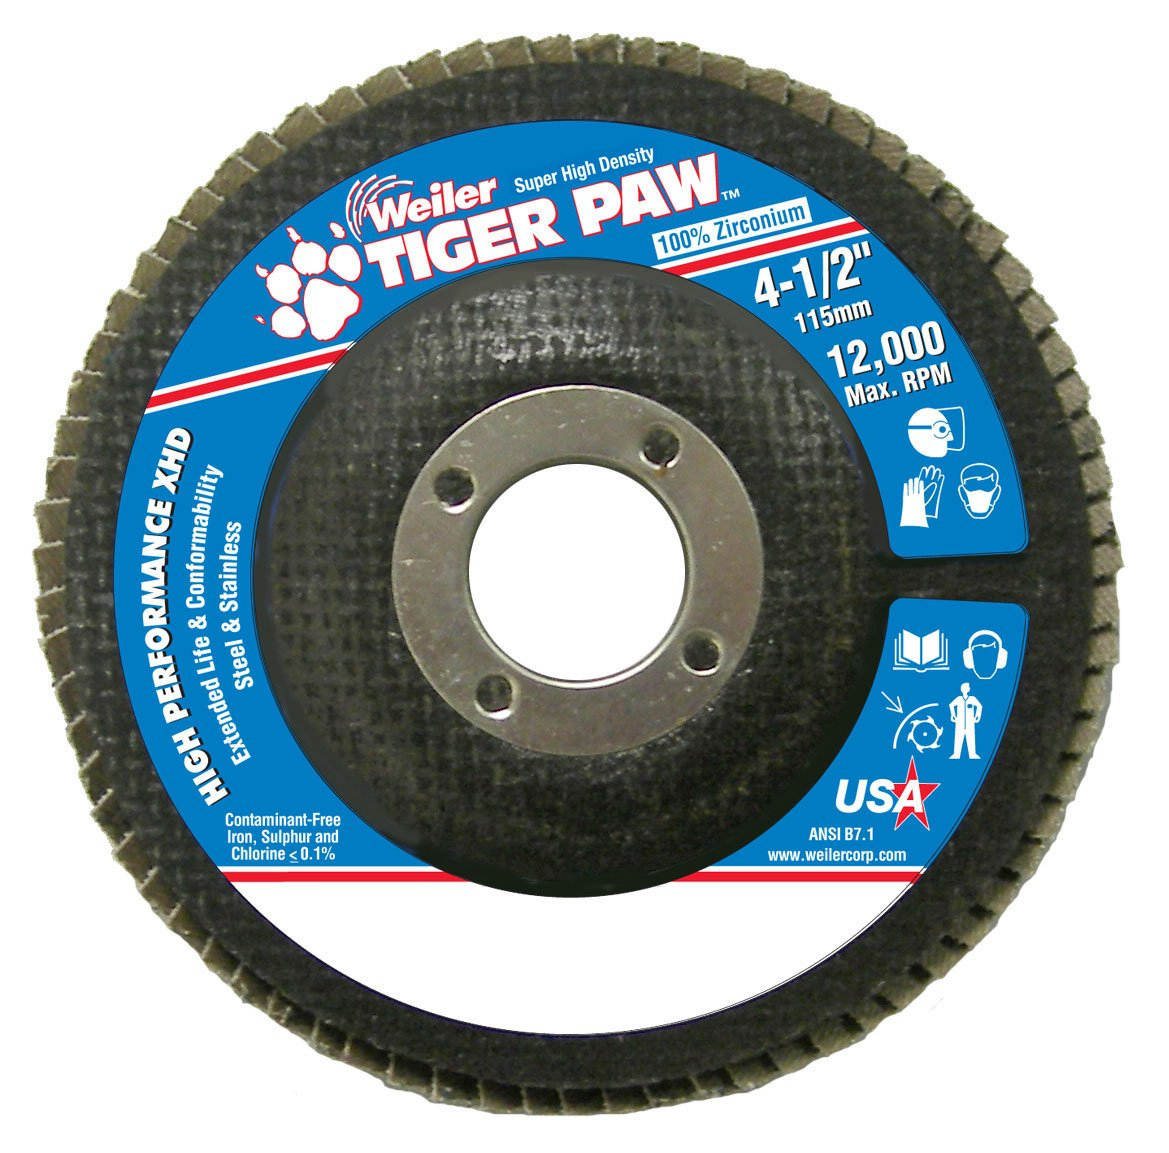 Weiler 51162 Tiger Paw XHD Super High Density Abrasive Flap Disc, Type 27 Flat Style, Phenolic Backing, Zirconia Alumina, 4-1/2'' Diameter, 7/8'' Arbor, 60 Grit, 12000 RPM (Pack of 10)